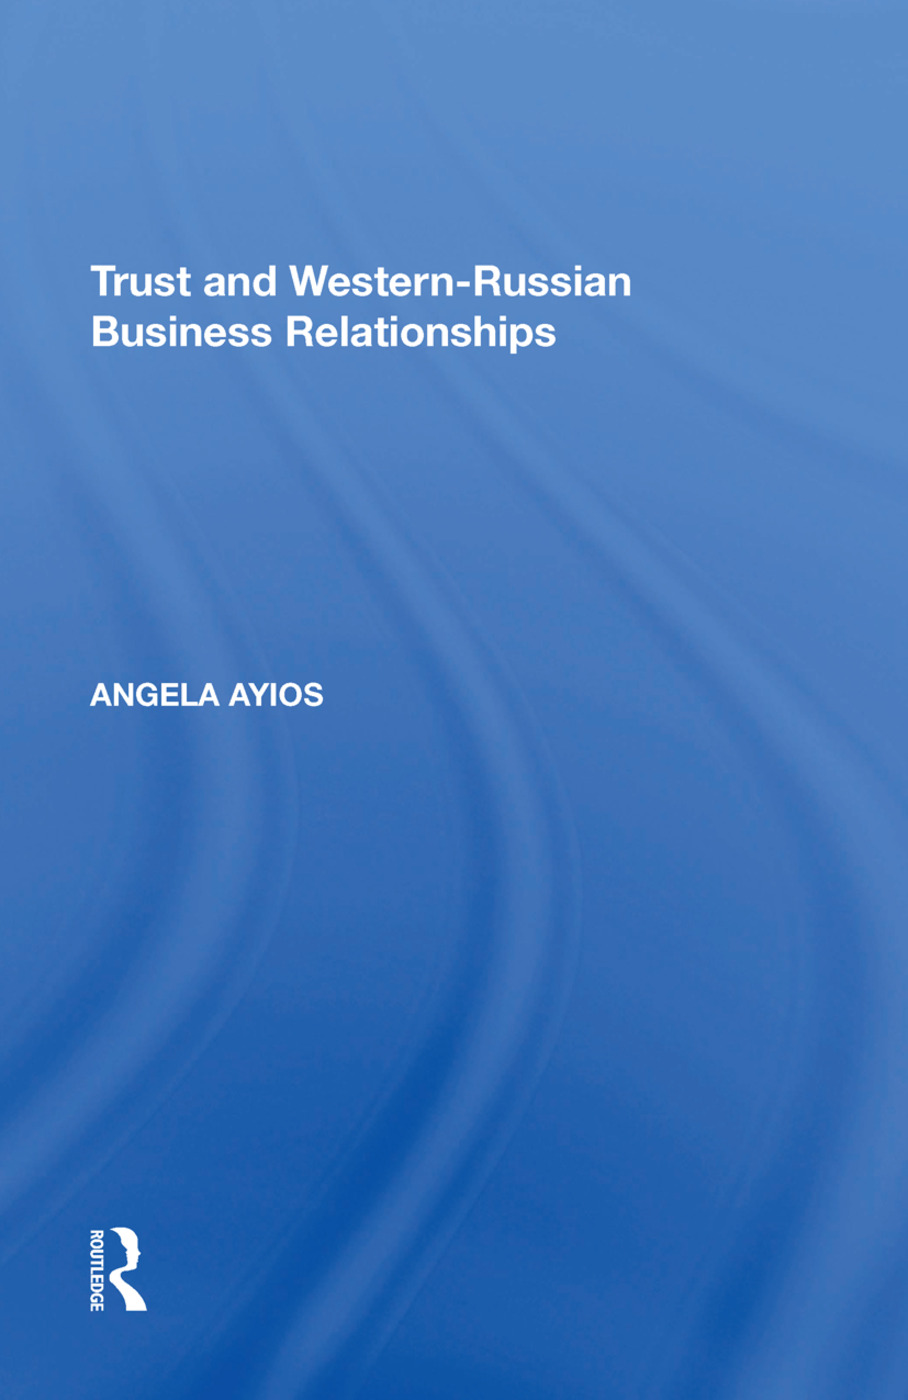 Trust and Western-Russian Business Relationships